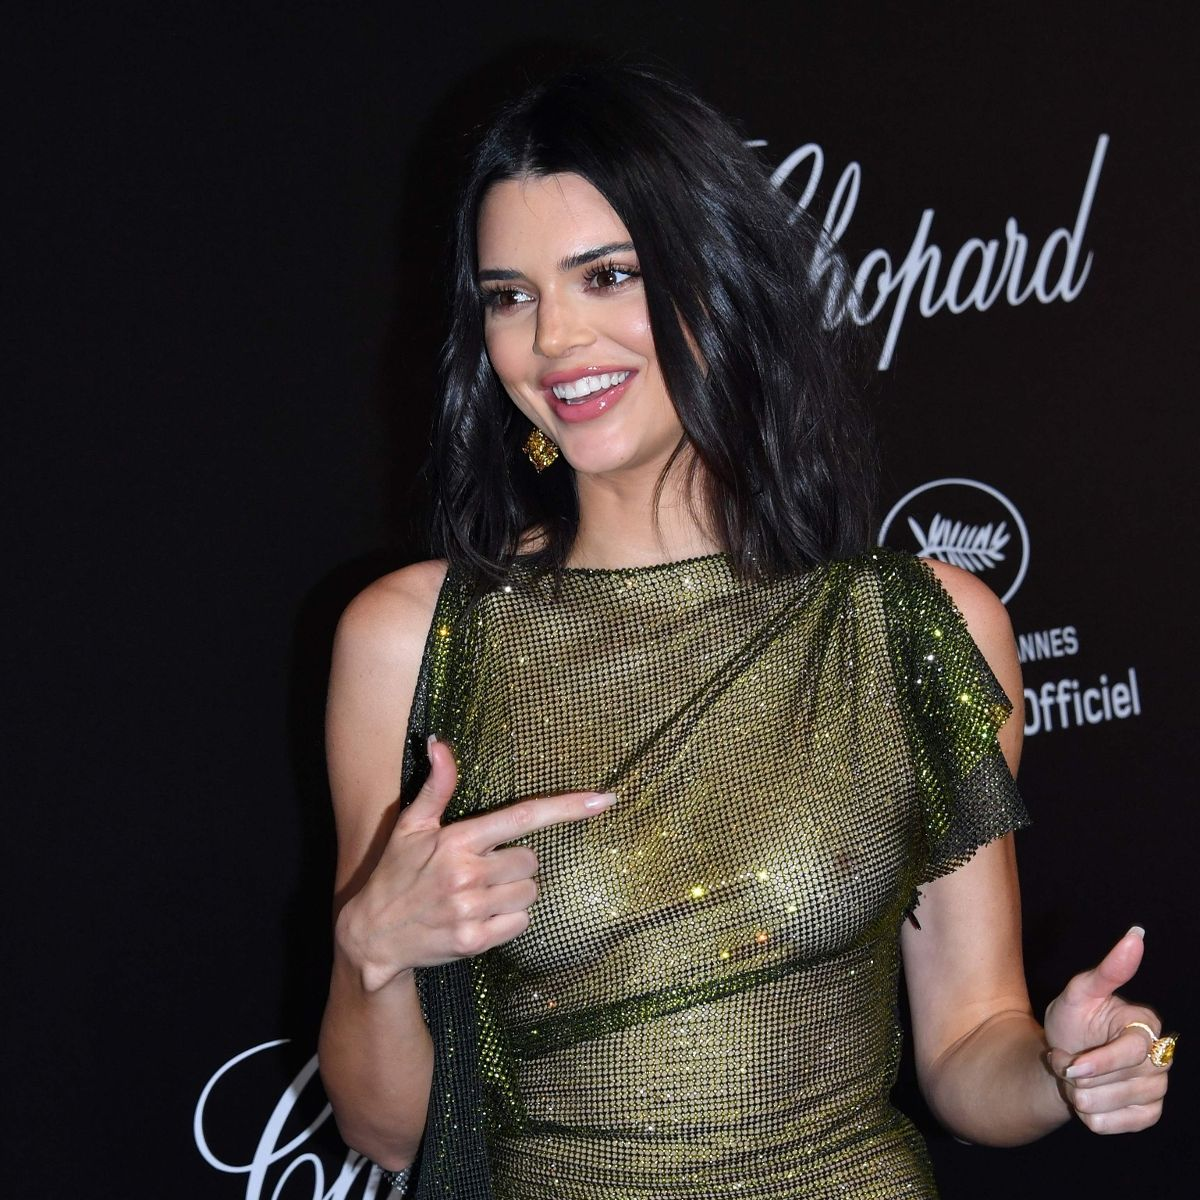 Kendall Jenner Cleavage photo 27